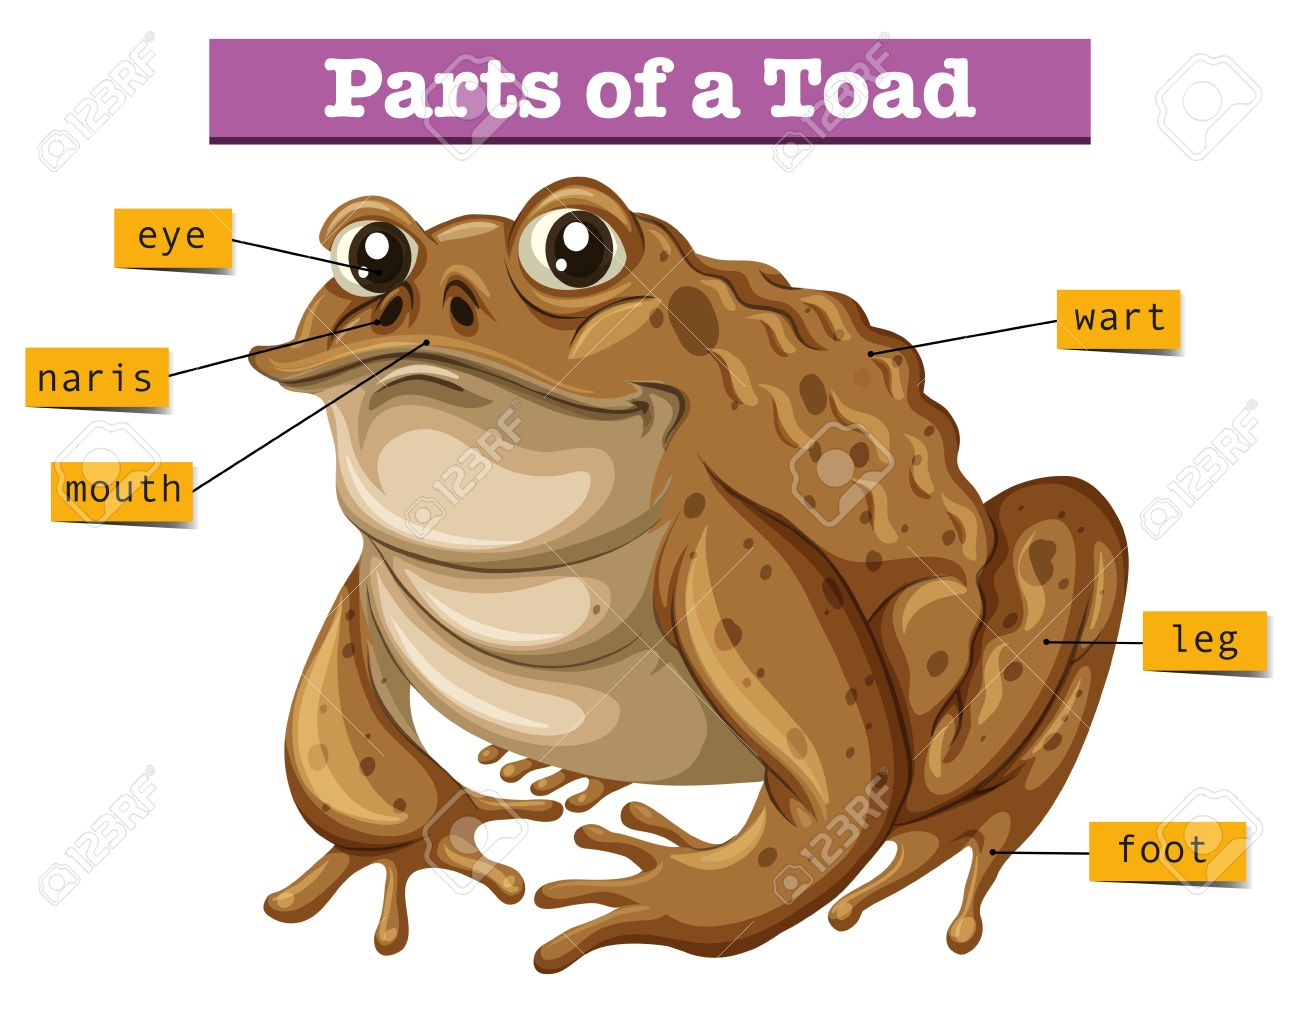 hight resolution of diagram showing parts of toad illustration royalty free clipartsdiagram showing parts of toad illustration stock vector